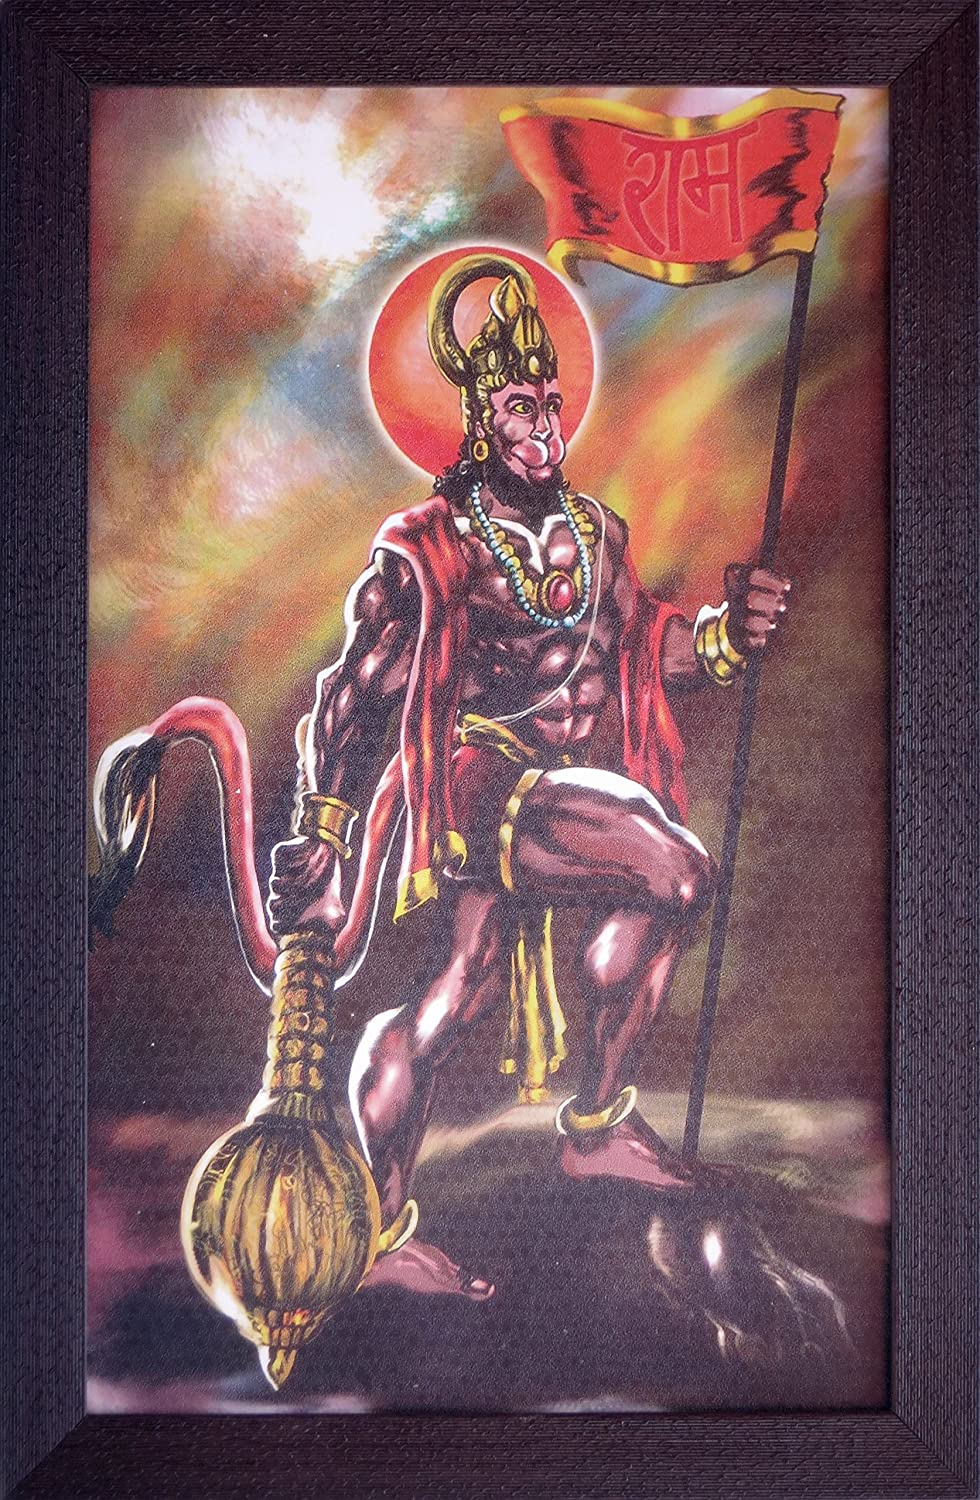 A Hindu Religious Poster for Home//Offices and Indian Religious and Gift Purpose 198-35 Handicraft Store Lord Hanuman Standing on Rock Holding Flag with Ram and Holding his Weapon